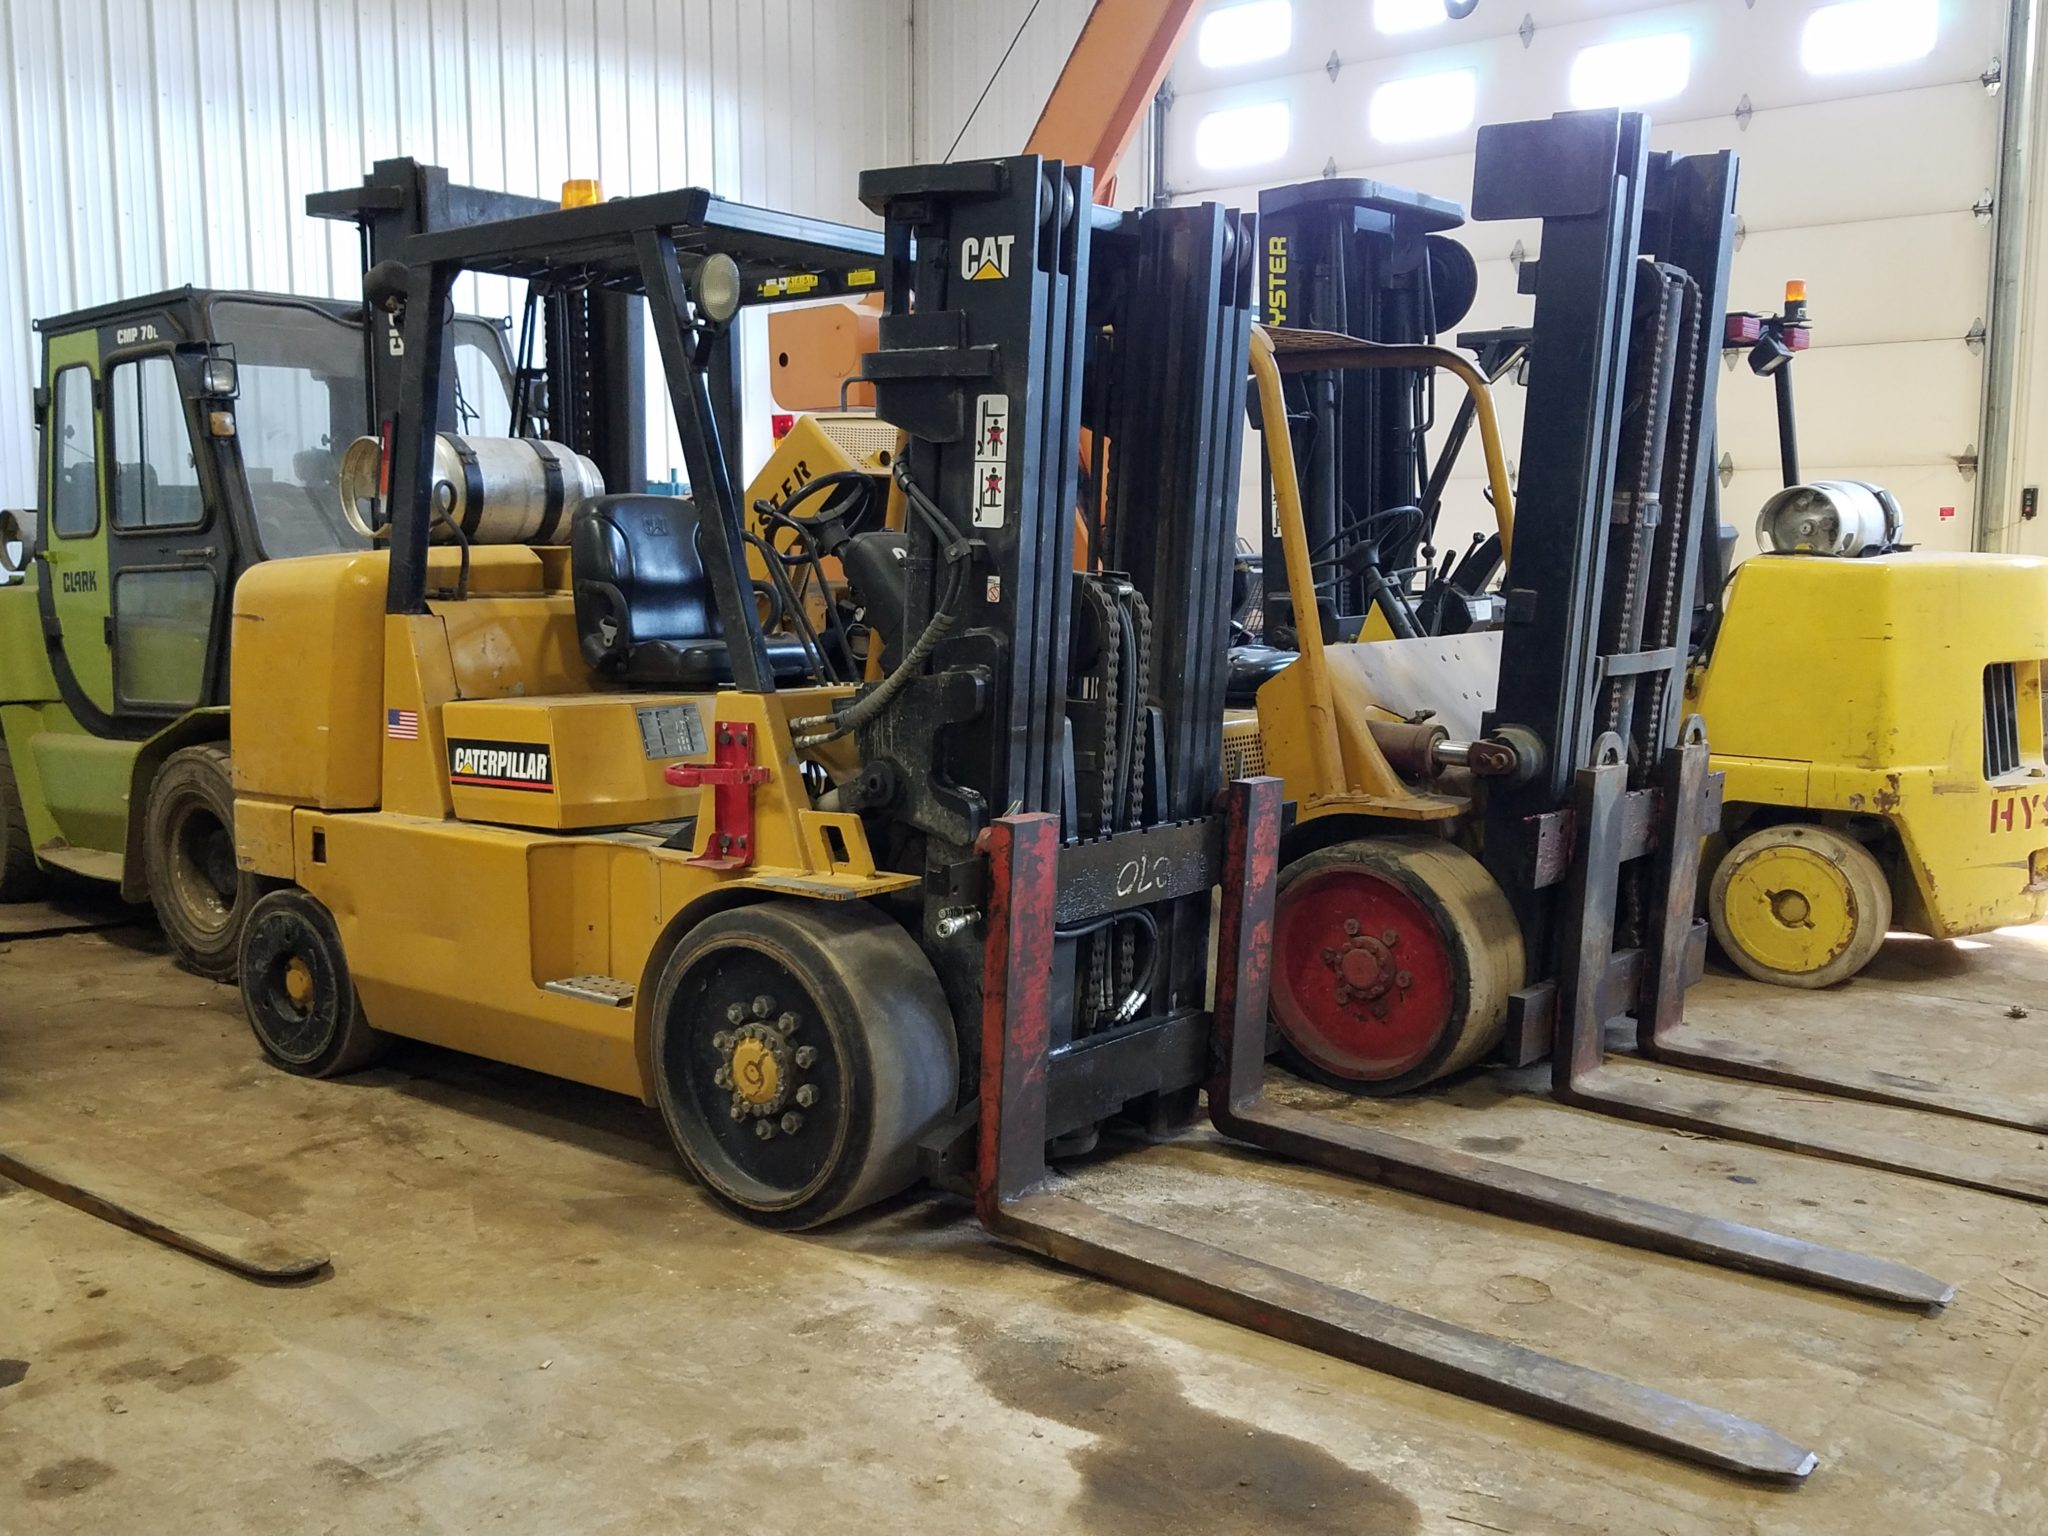 15,500lb. Capacity Cat Forklift For Sale 7.75 Ton